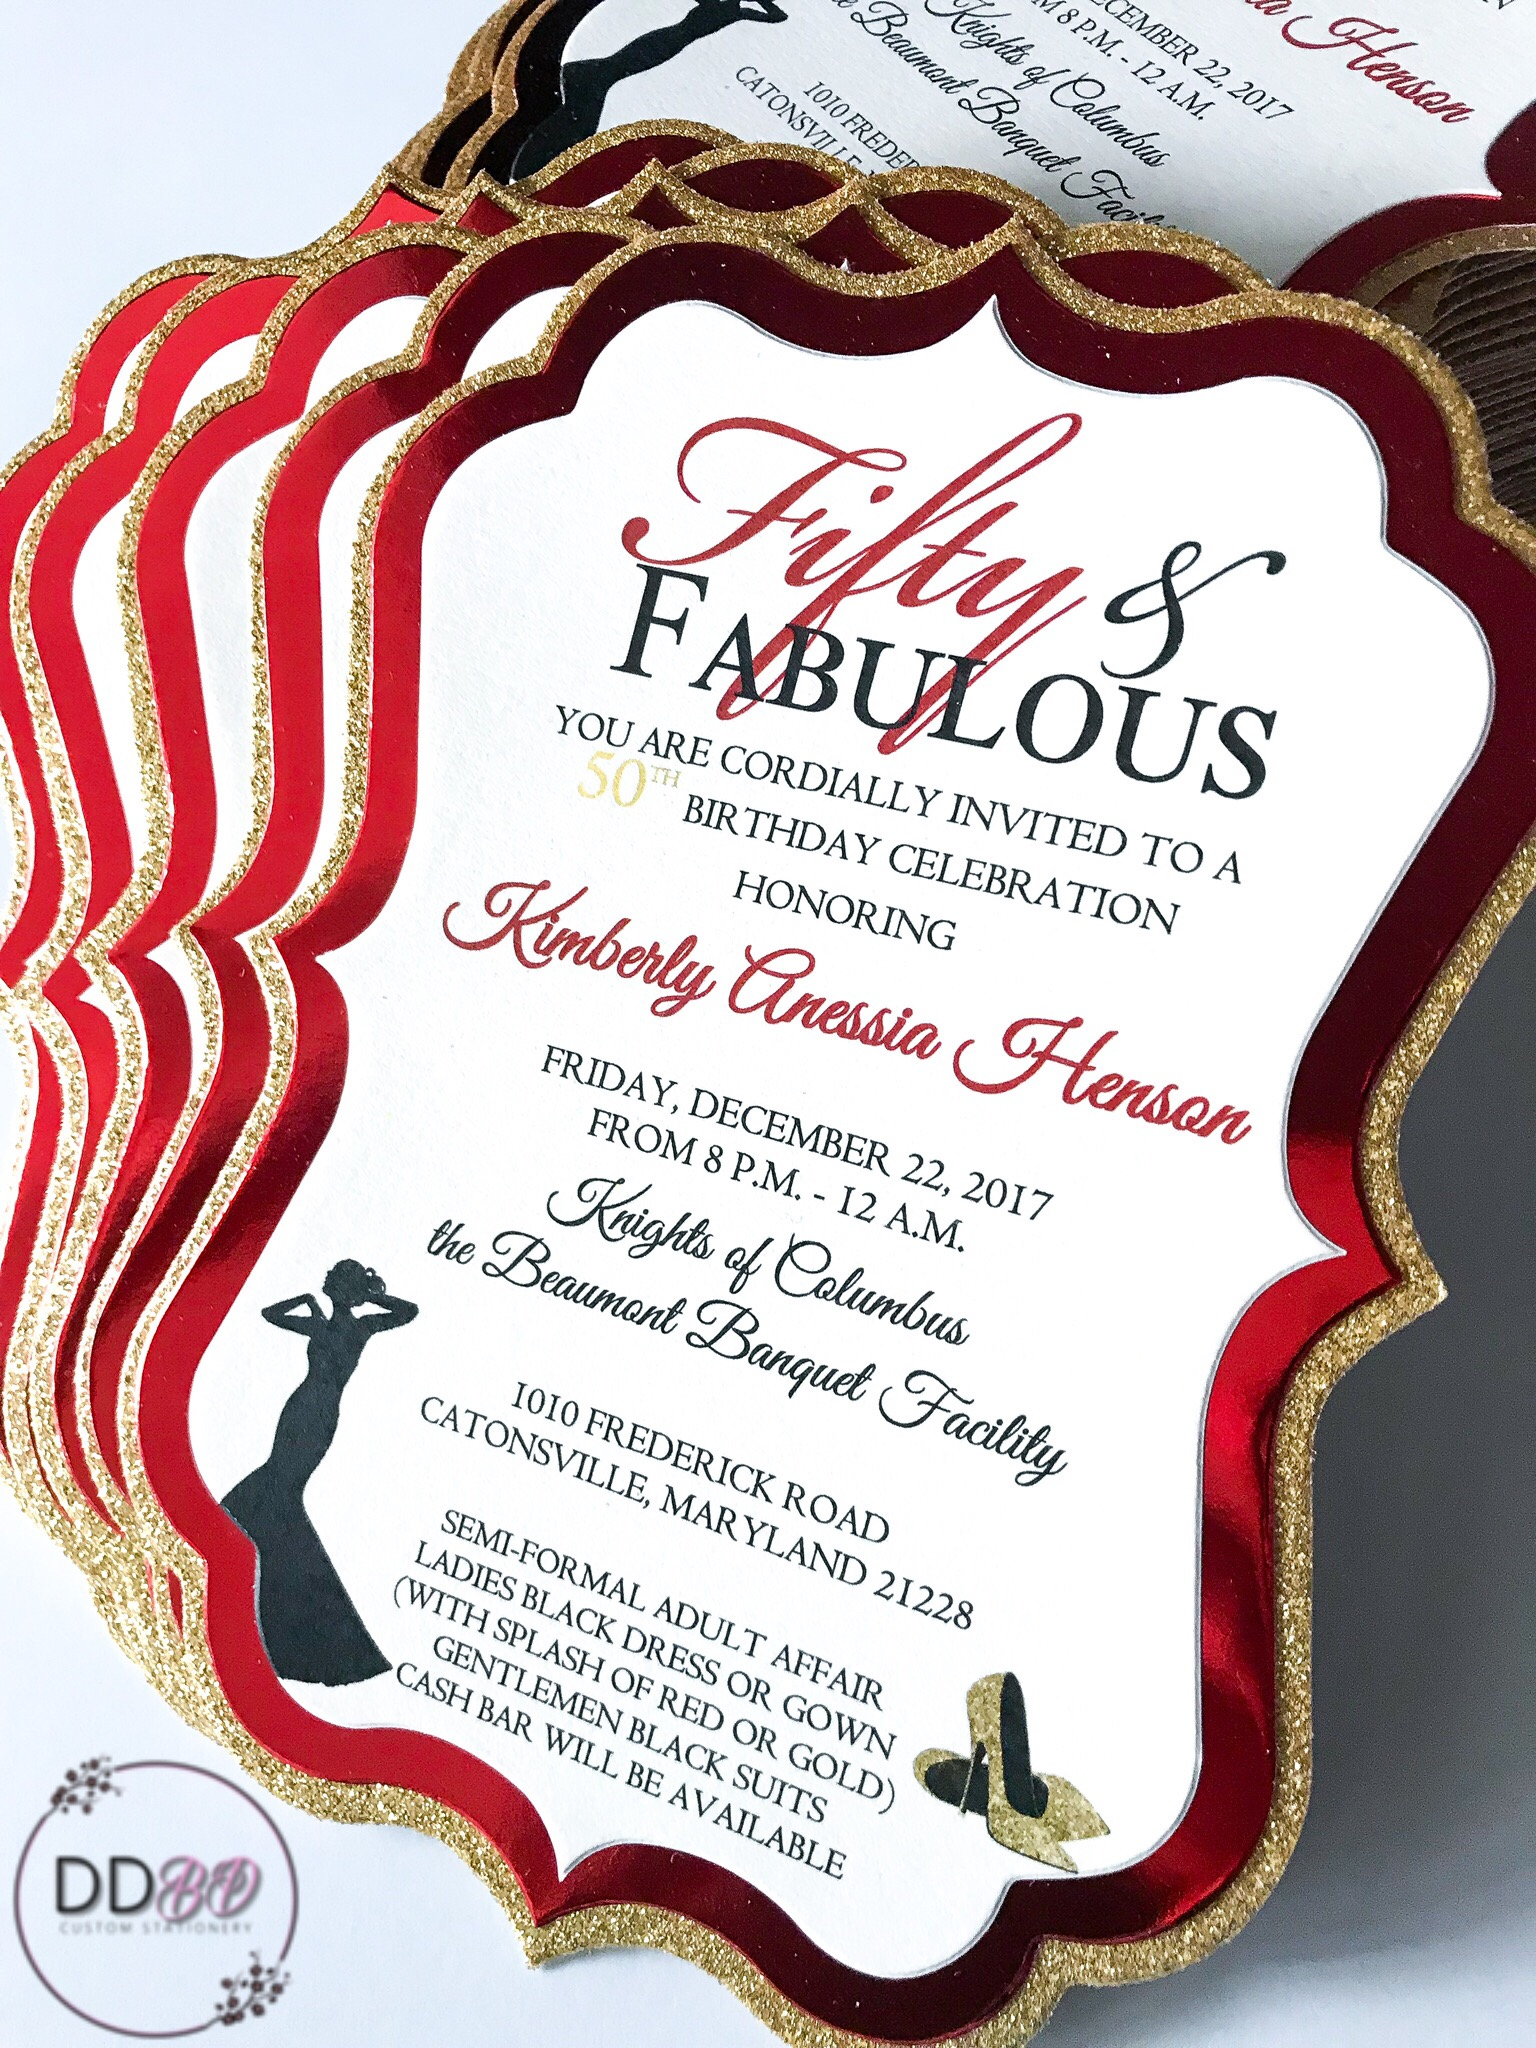 Fifty & Fabulous invitations